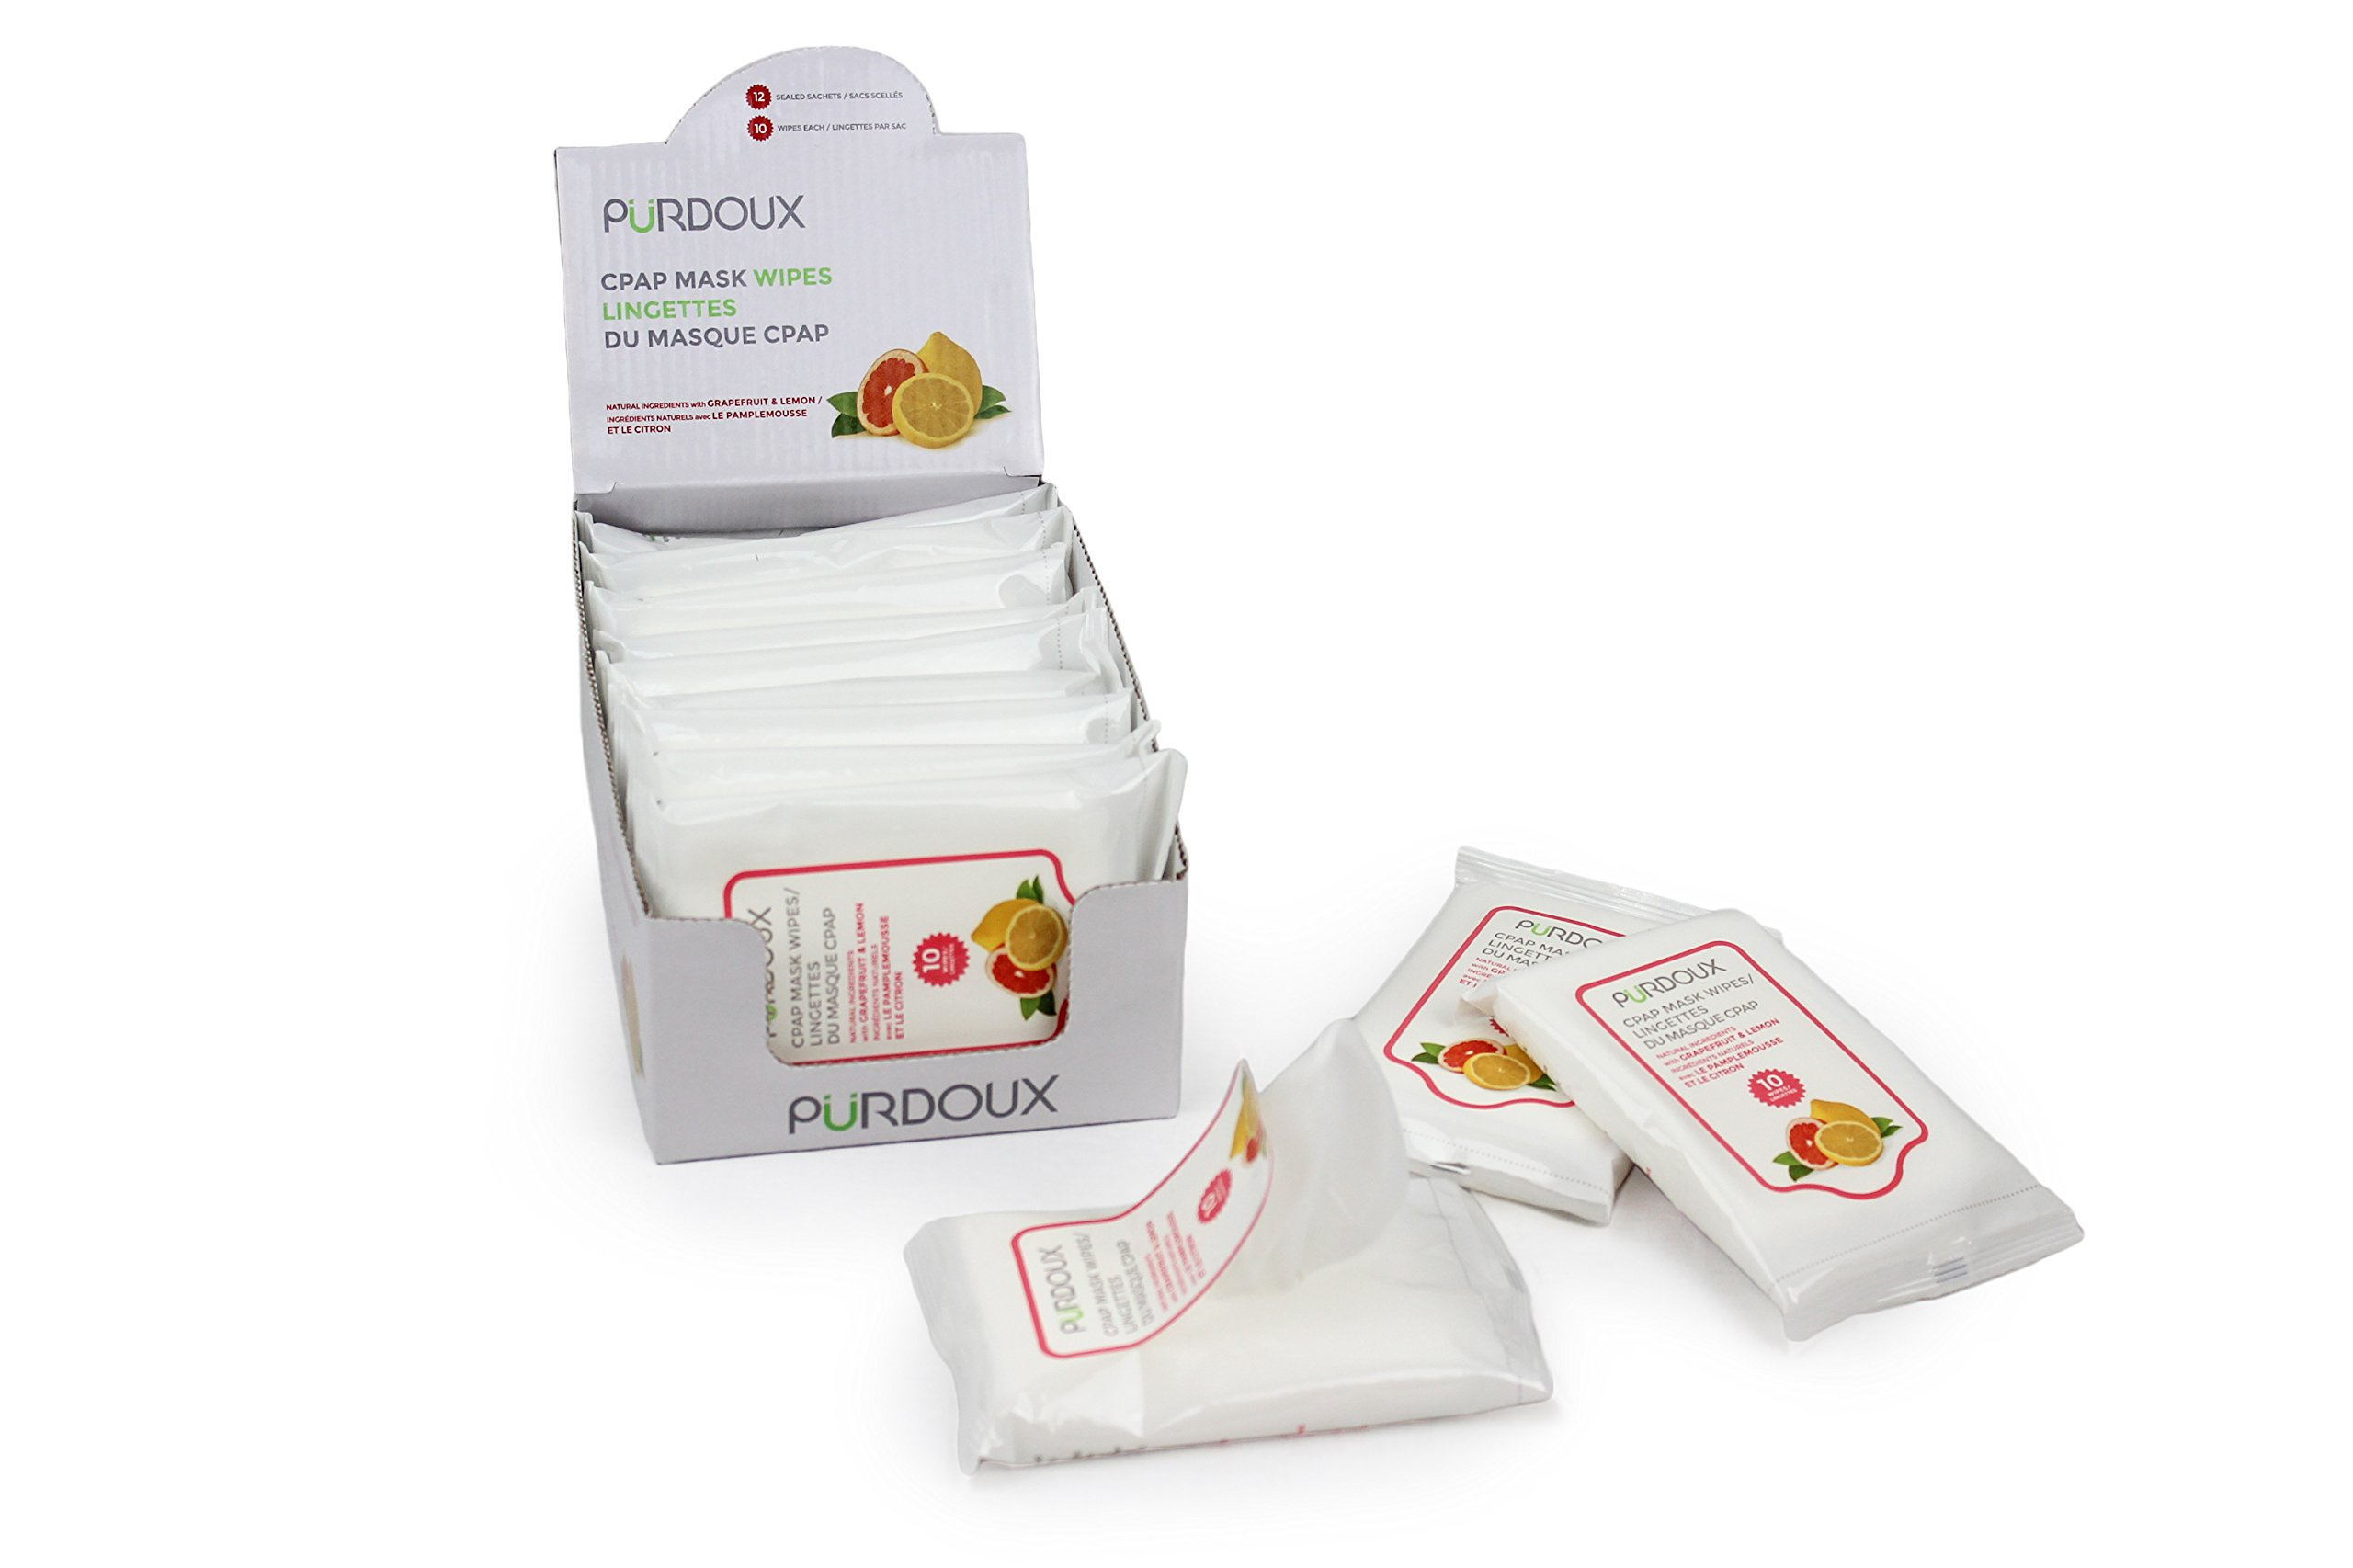 Purdoux PÜRDOUX 100% Cotton CPAP Mask Wipes with Grapefruit Lemon Scent (Box of Total